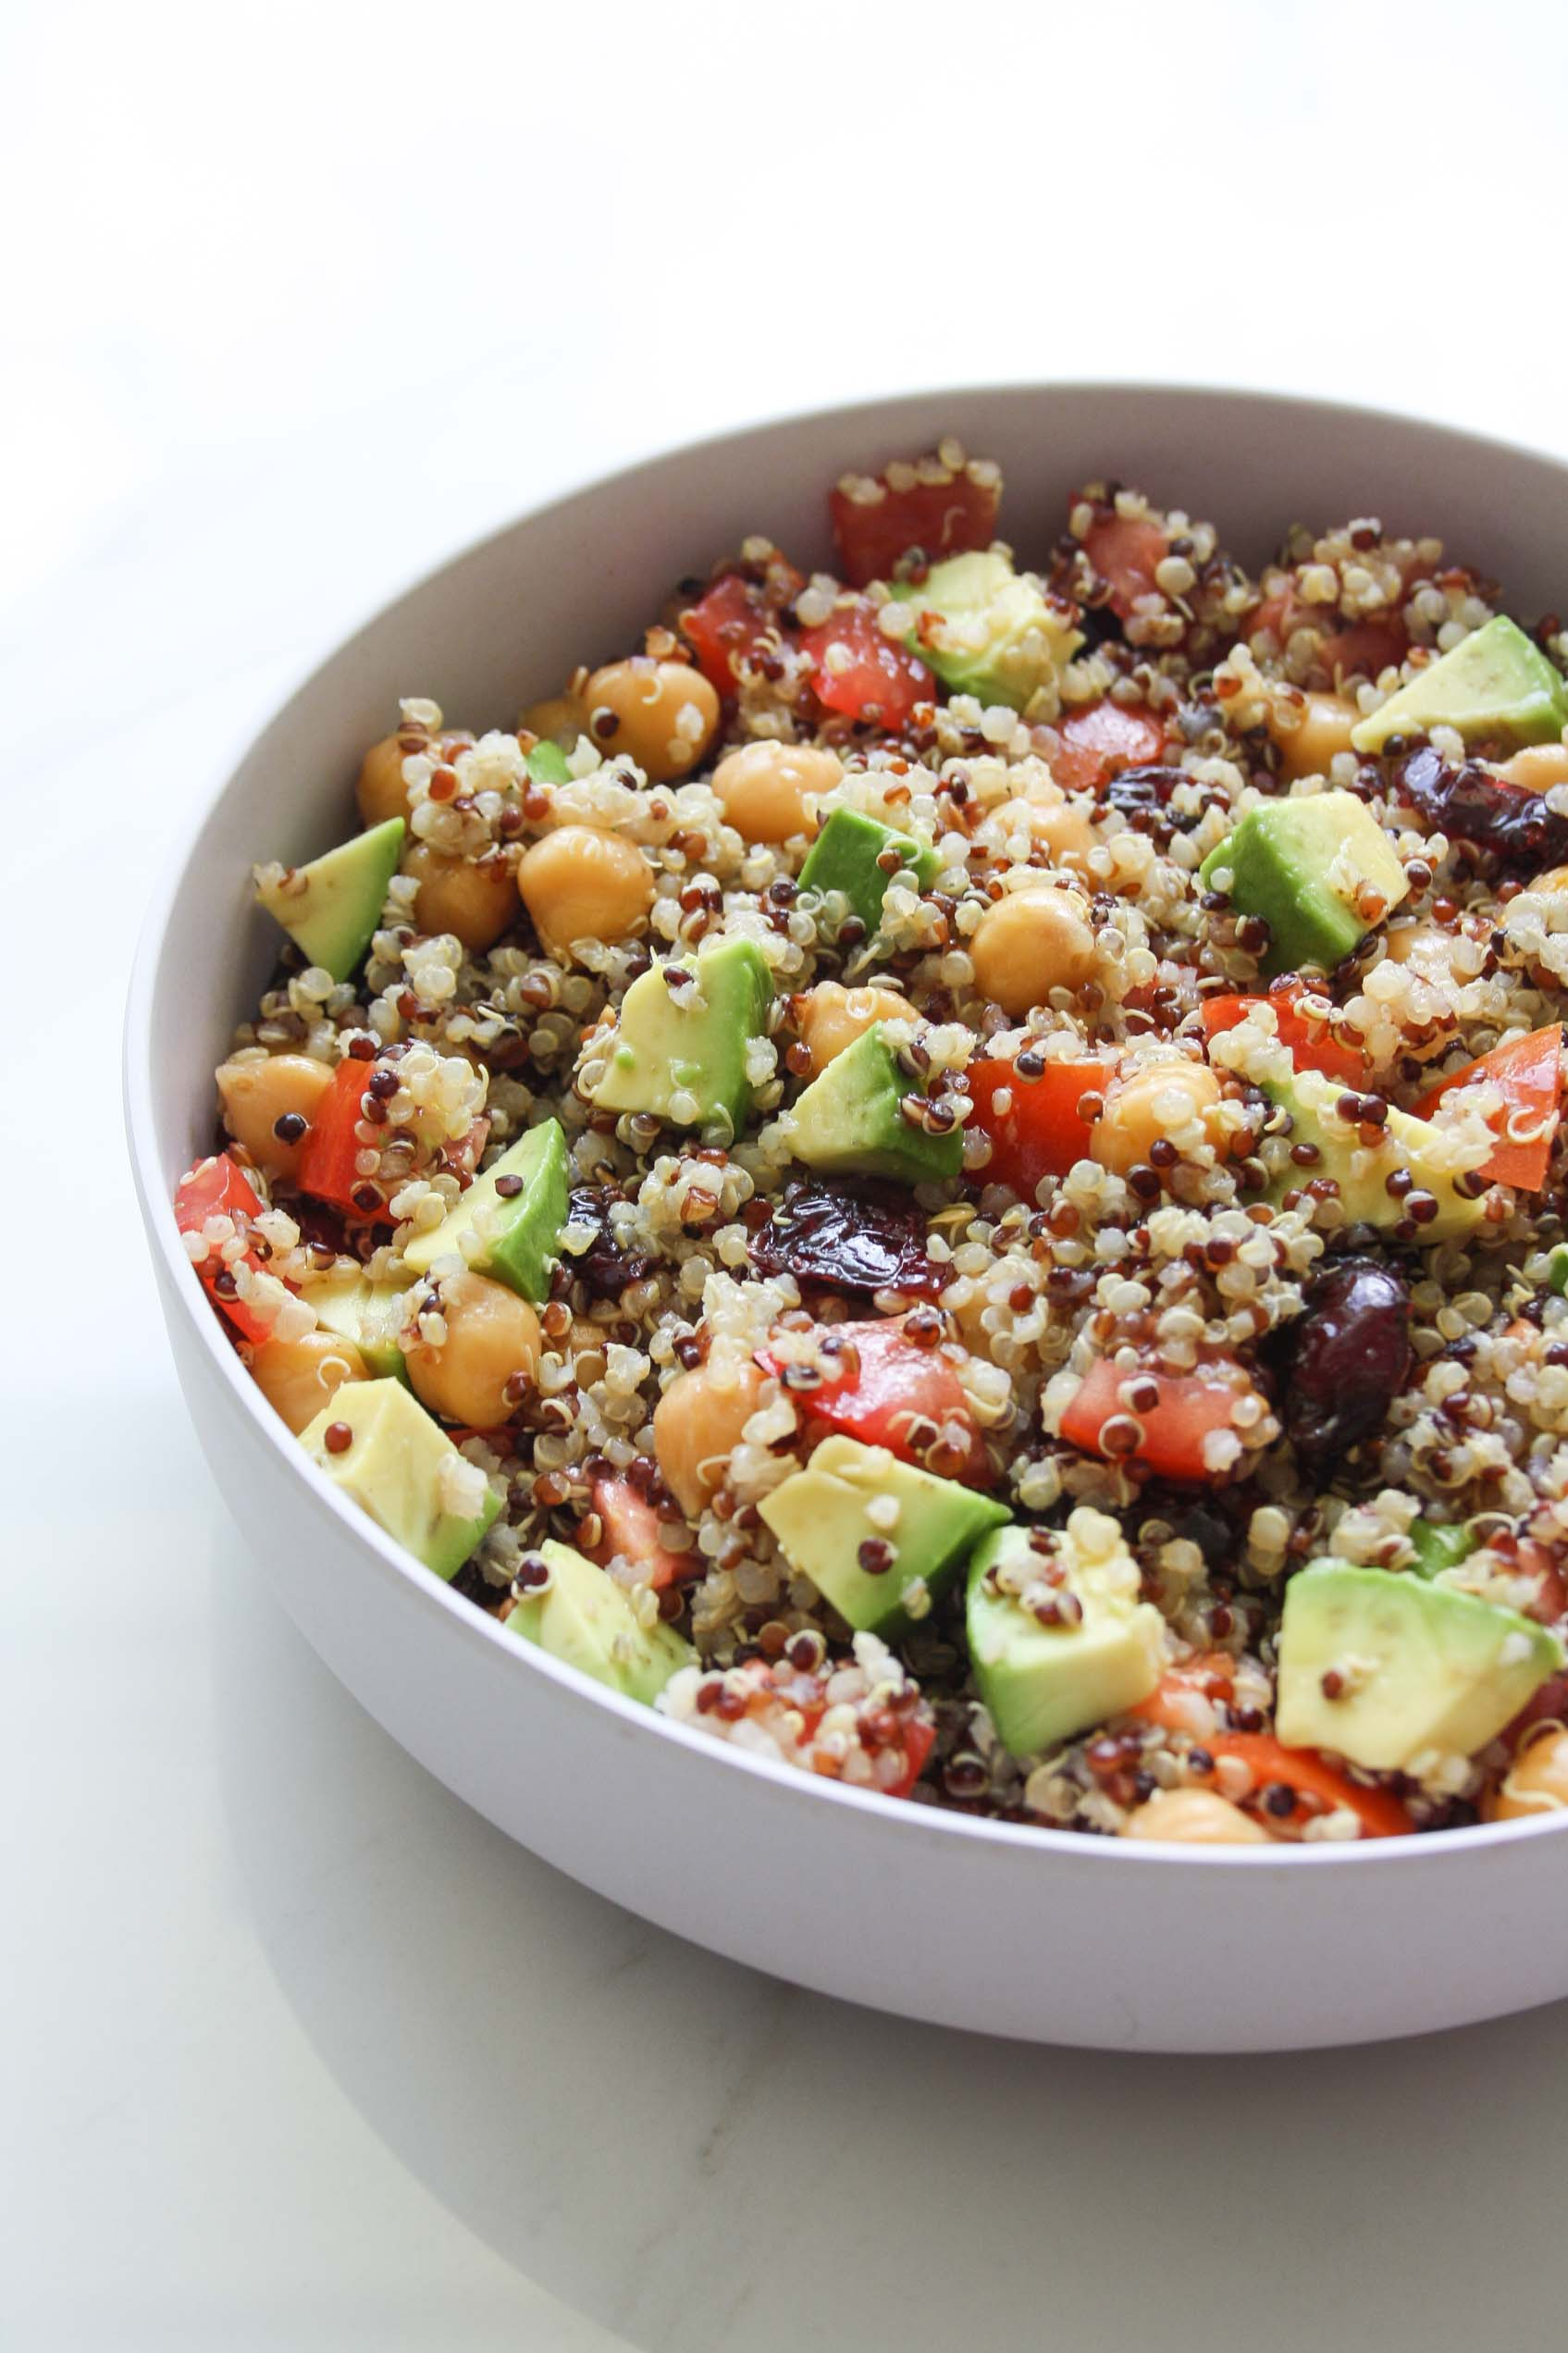 quinoa salad with avocado, tomatoes, chickpeas and cranberries